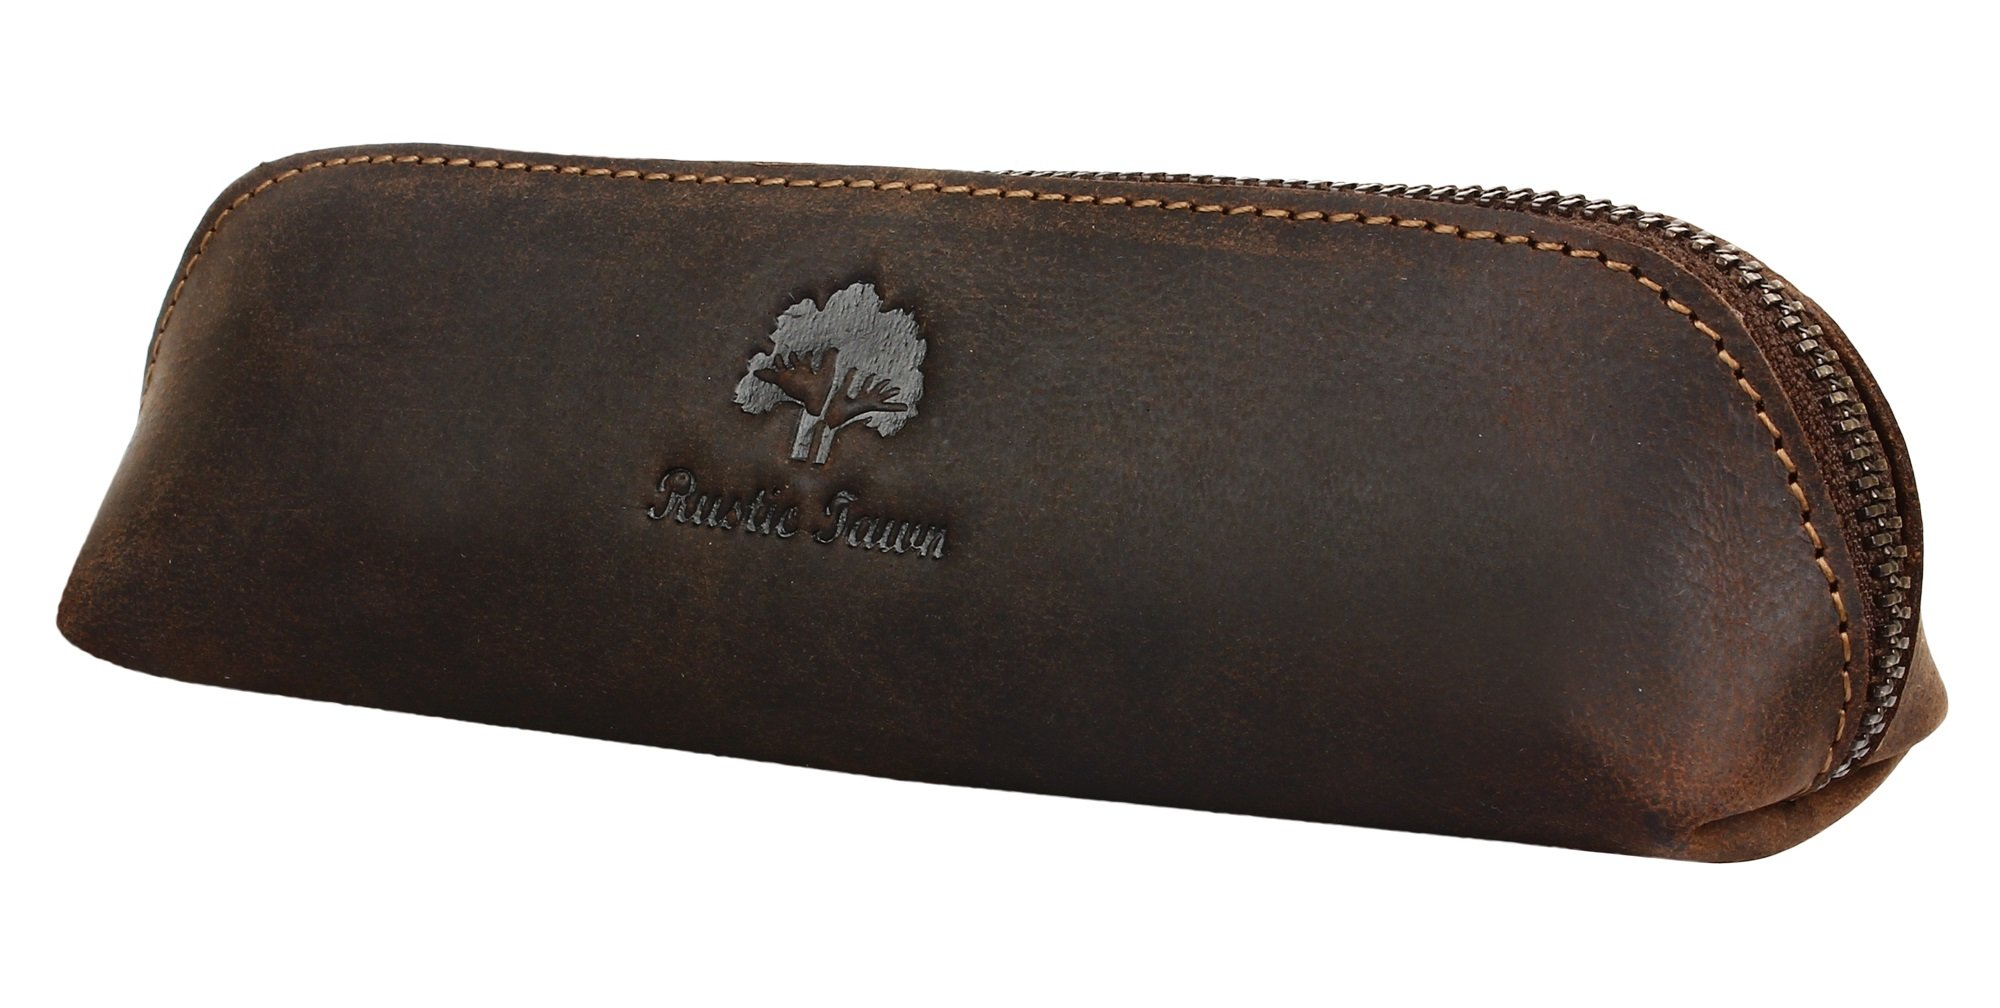 Leather Pen Case - Zippered Pencil Pouch for School, Work & Office by Rustic Town